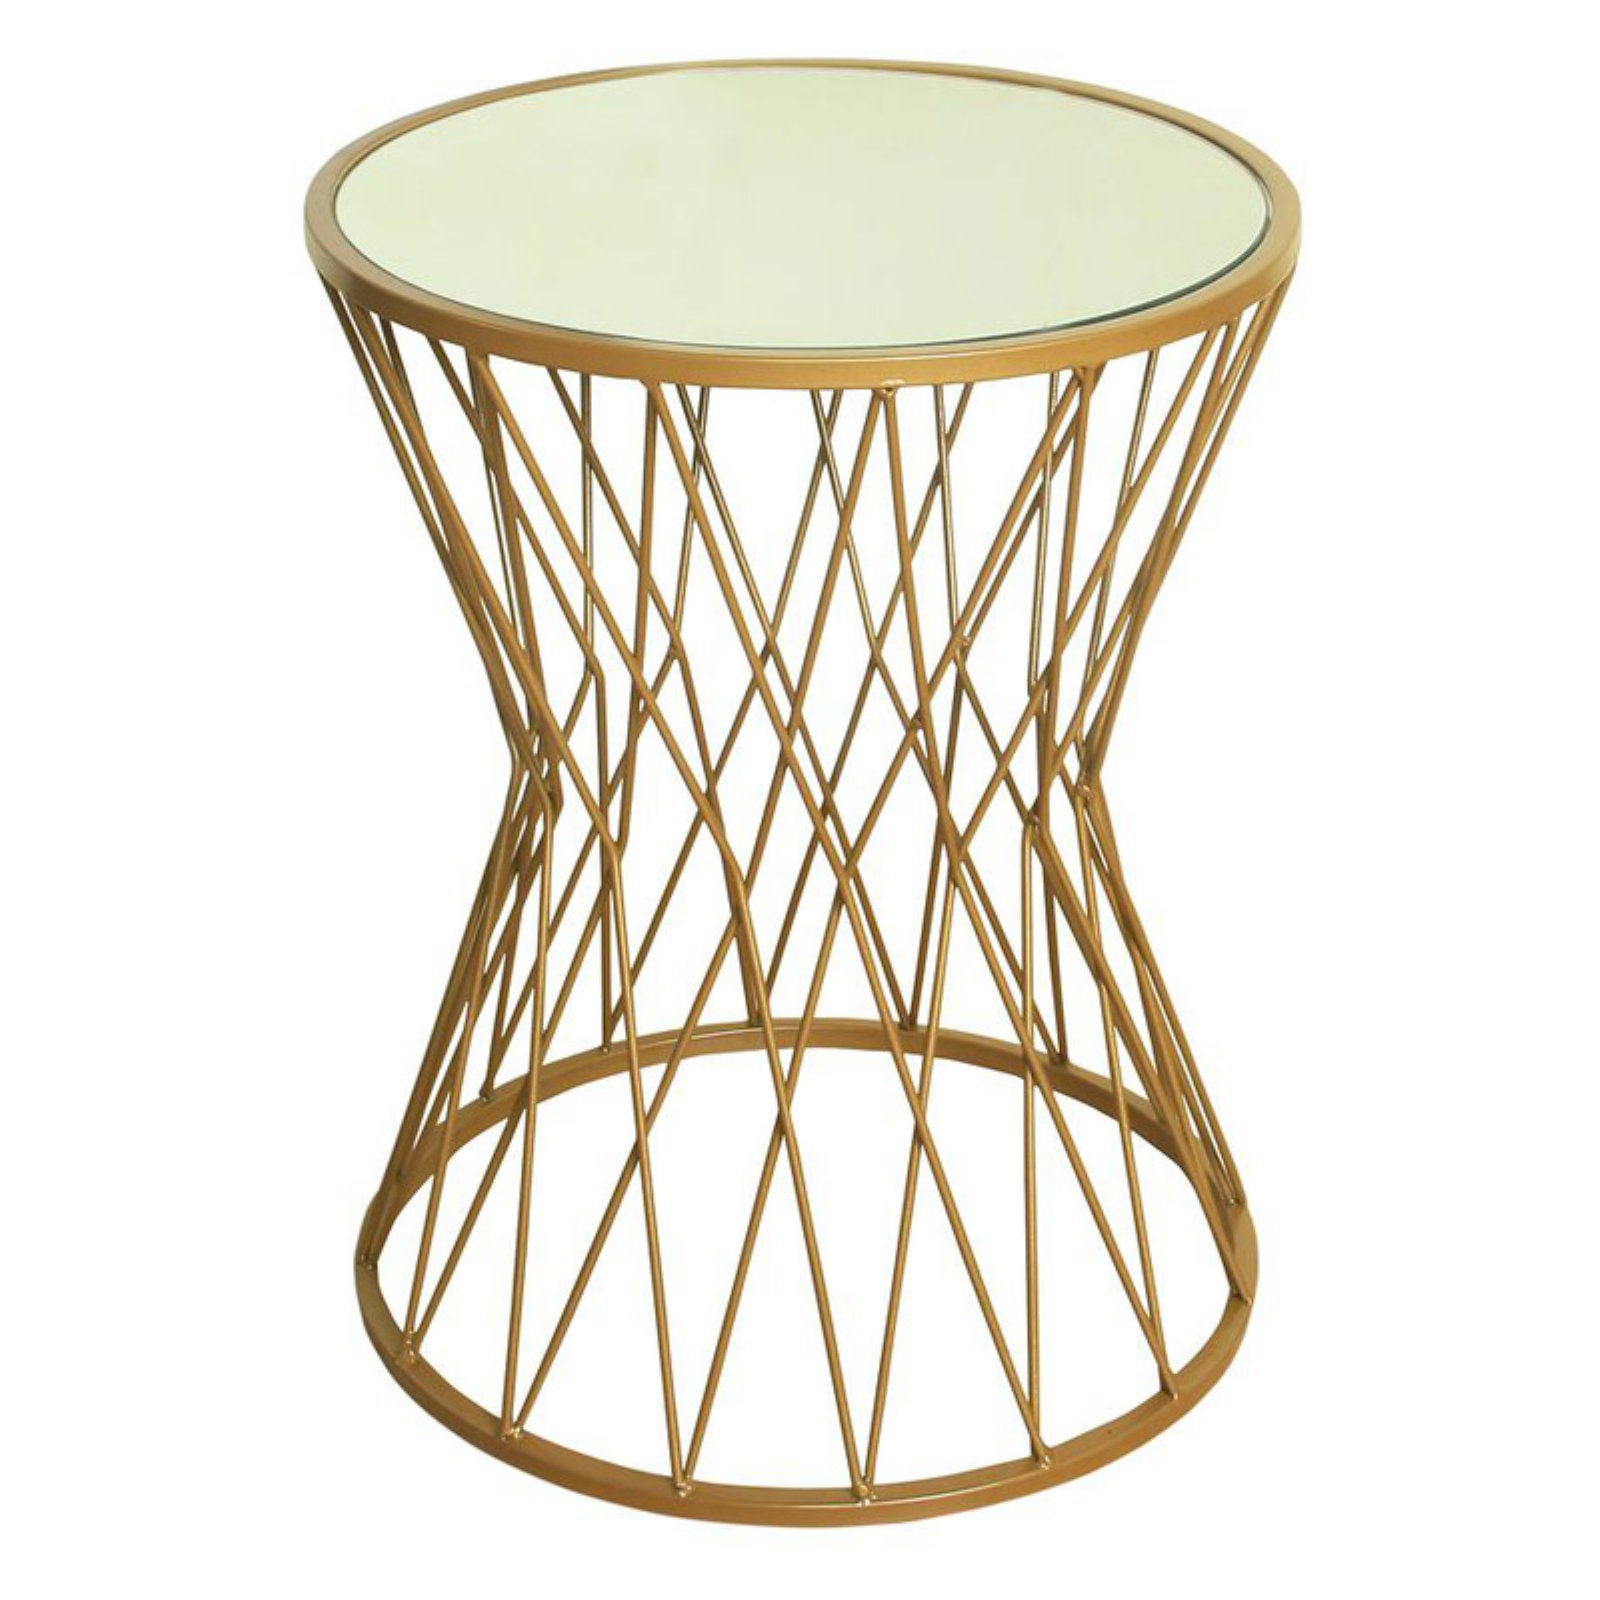 homepop hourglass mirror top metal accent table inuse wood drum round bedside with drawer target tripod lamp ikea small storage dining set pub style kitchen gold shelves modern